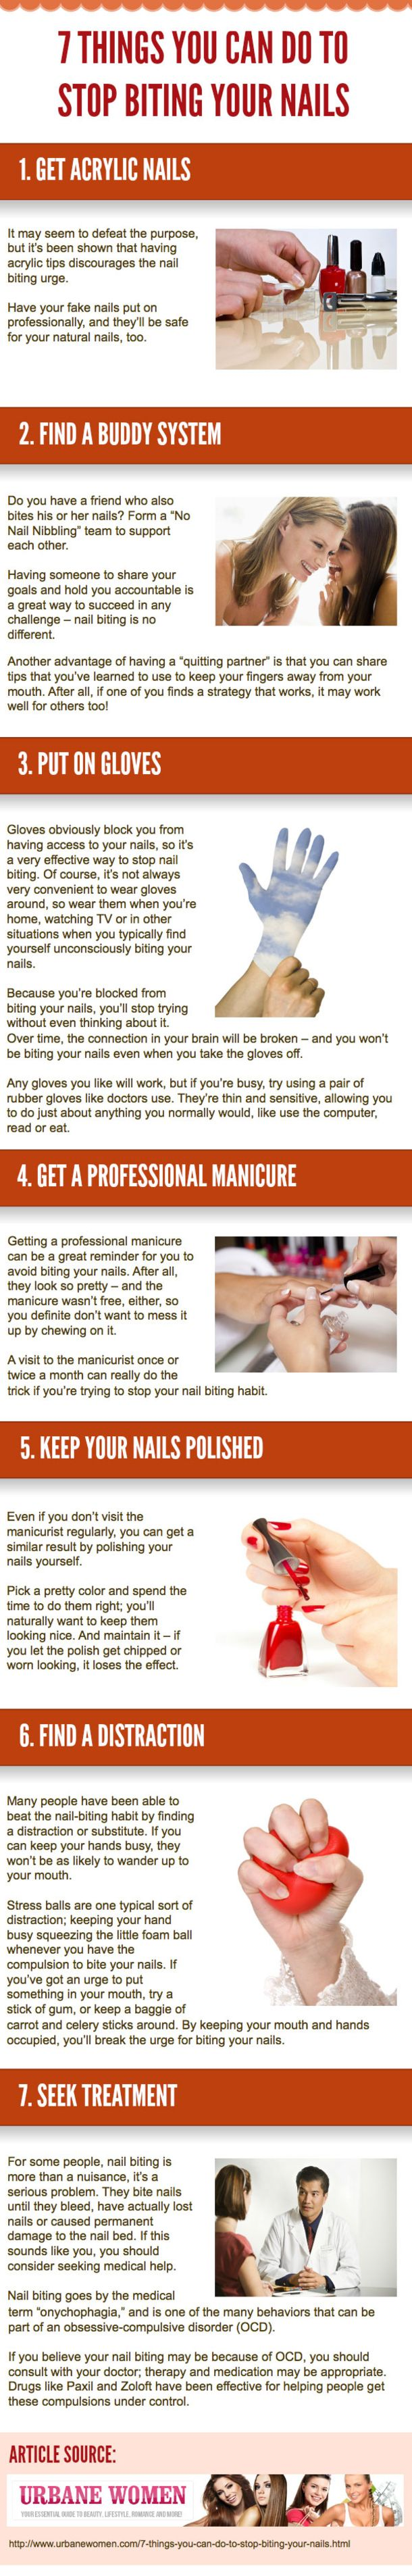 Learn the facts about the habit of nail biting, the negative effects it has on your health, and how to stop.